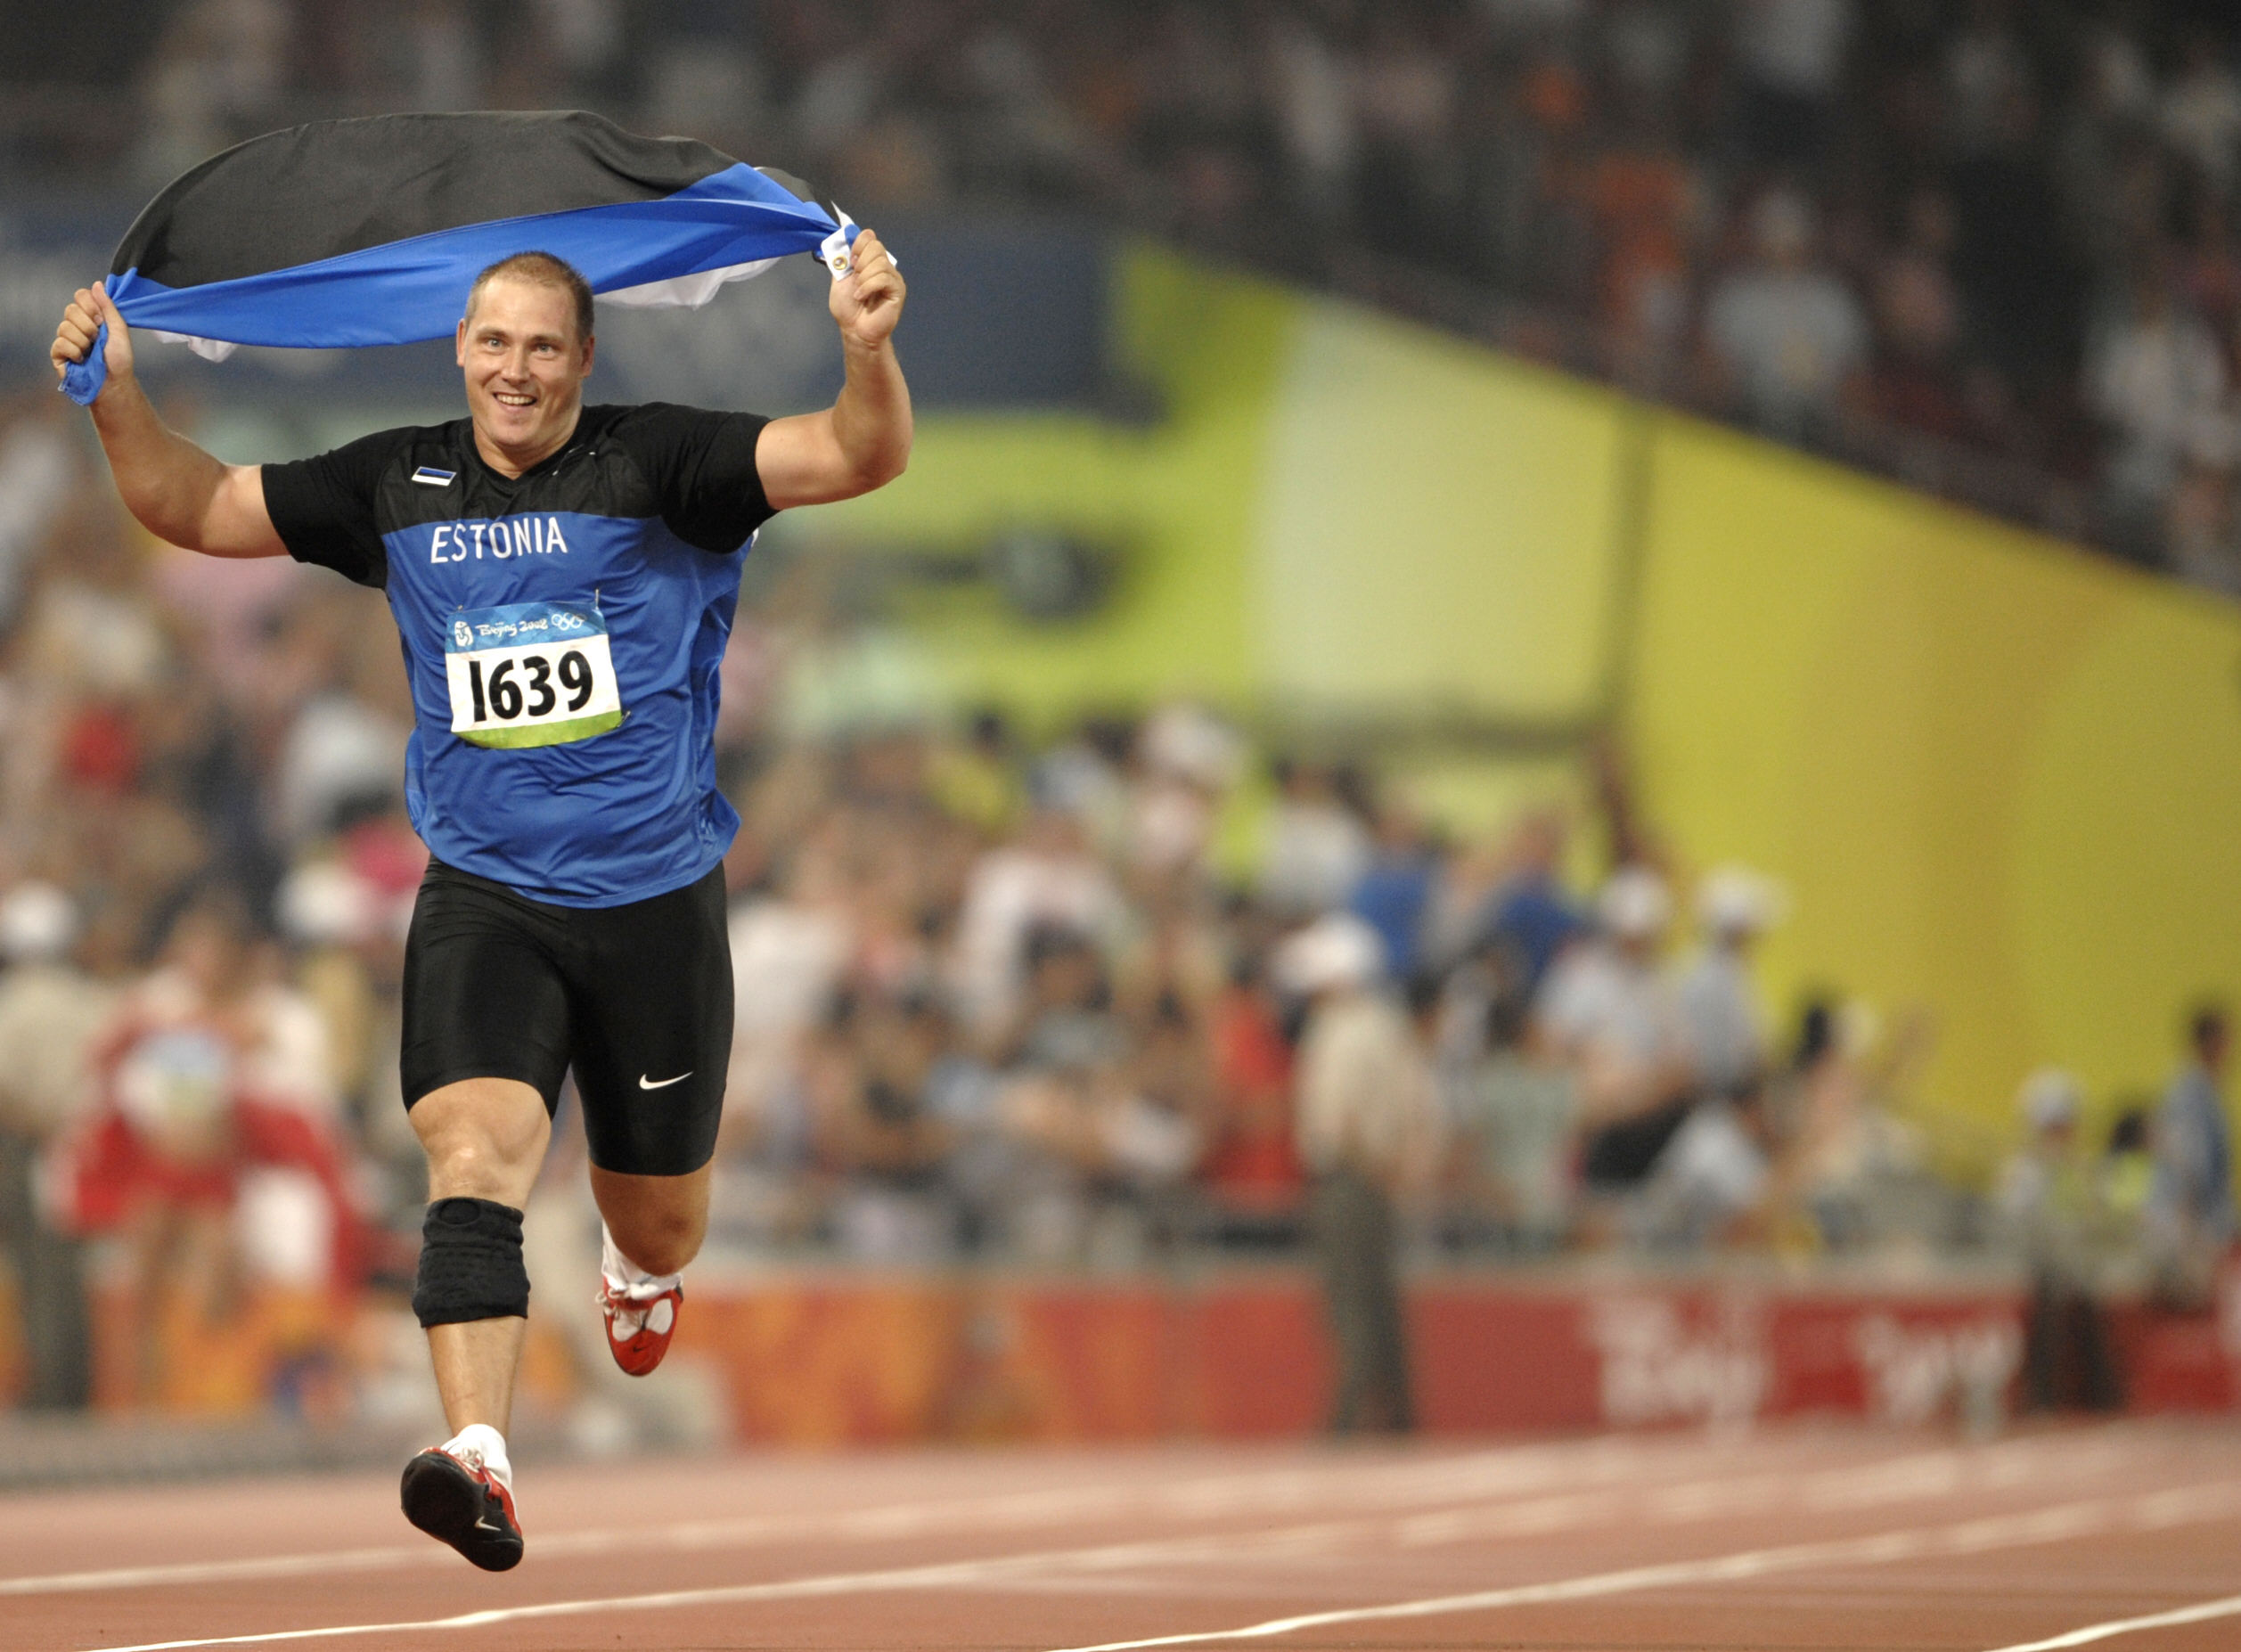 Discus Thrower Gerd Kanter performs a victory lap after clinching the Olympic title in 2008